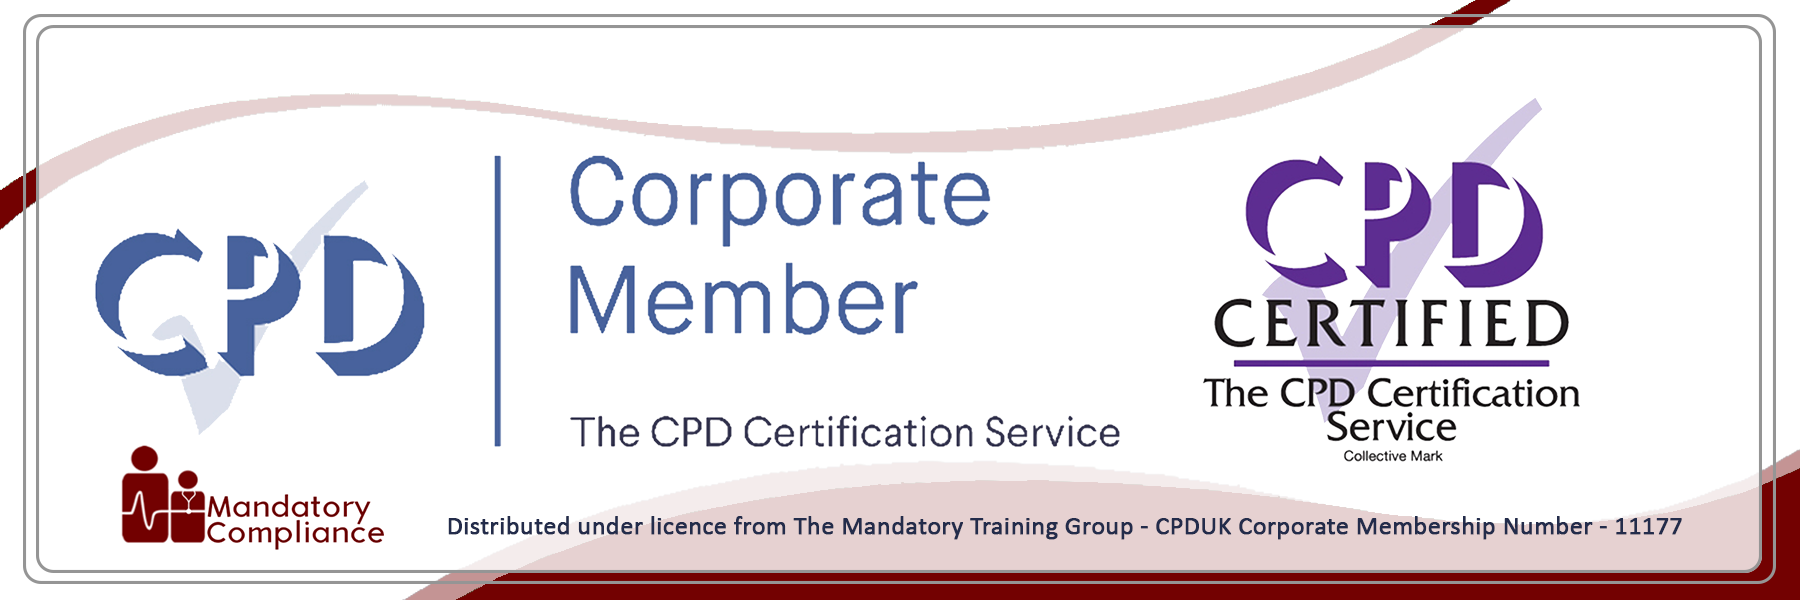 COSHH Awareness - Online-Training-Course-CPD-Accredited-Mandatory-Compliance-UK-